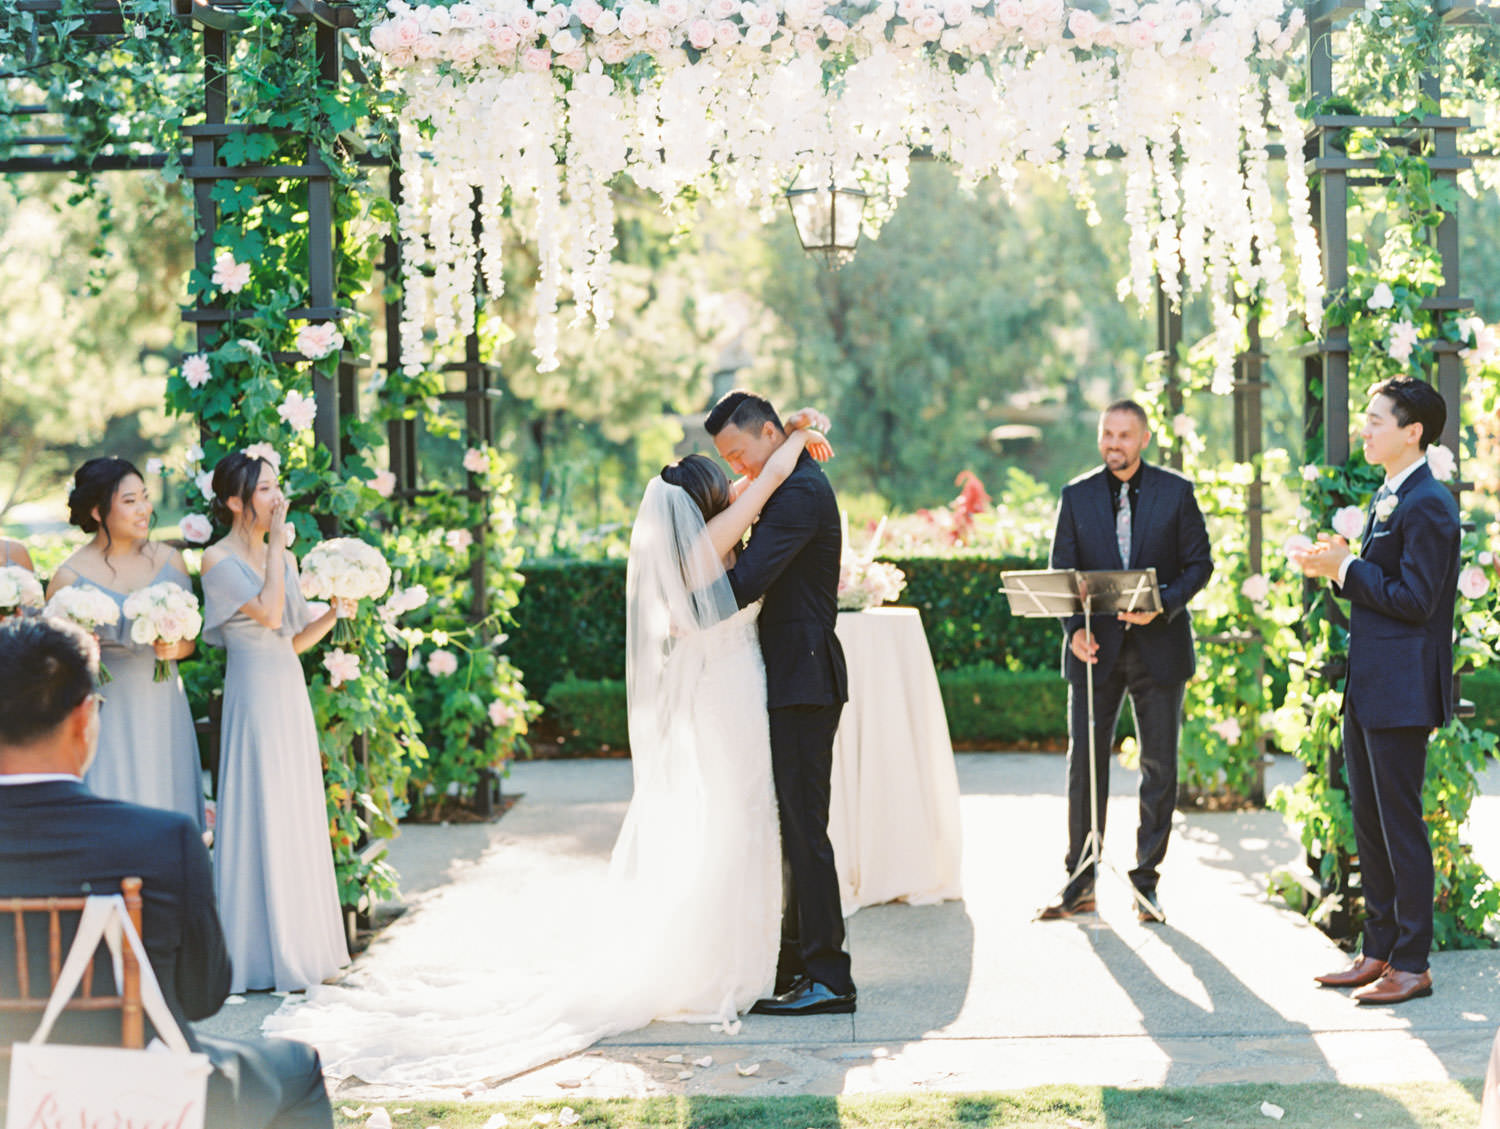 Bride and groom first kiss in front of a Pergola wrapped in greenery with blush flowers on the side columns and hanging blush and ivory flowers in the center. Rancho Bernardo Inn Aragon lawn wedding ceremony. Film photo by Cavin Elizabeth Photography